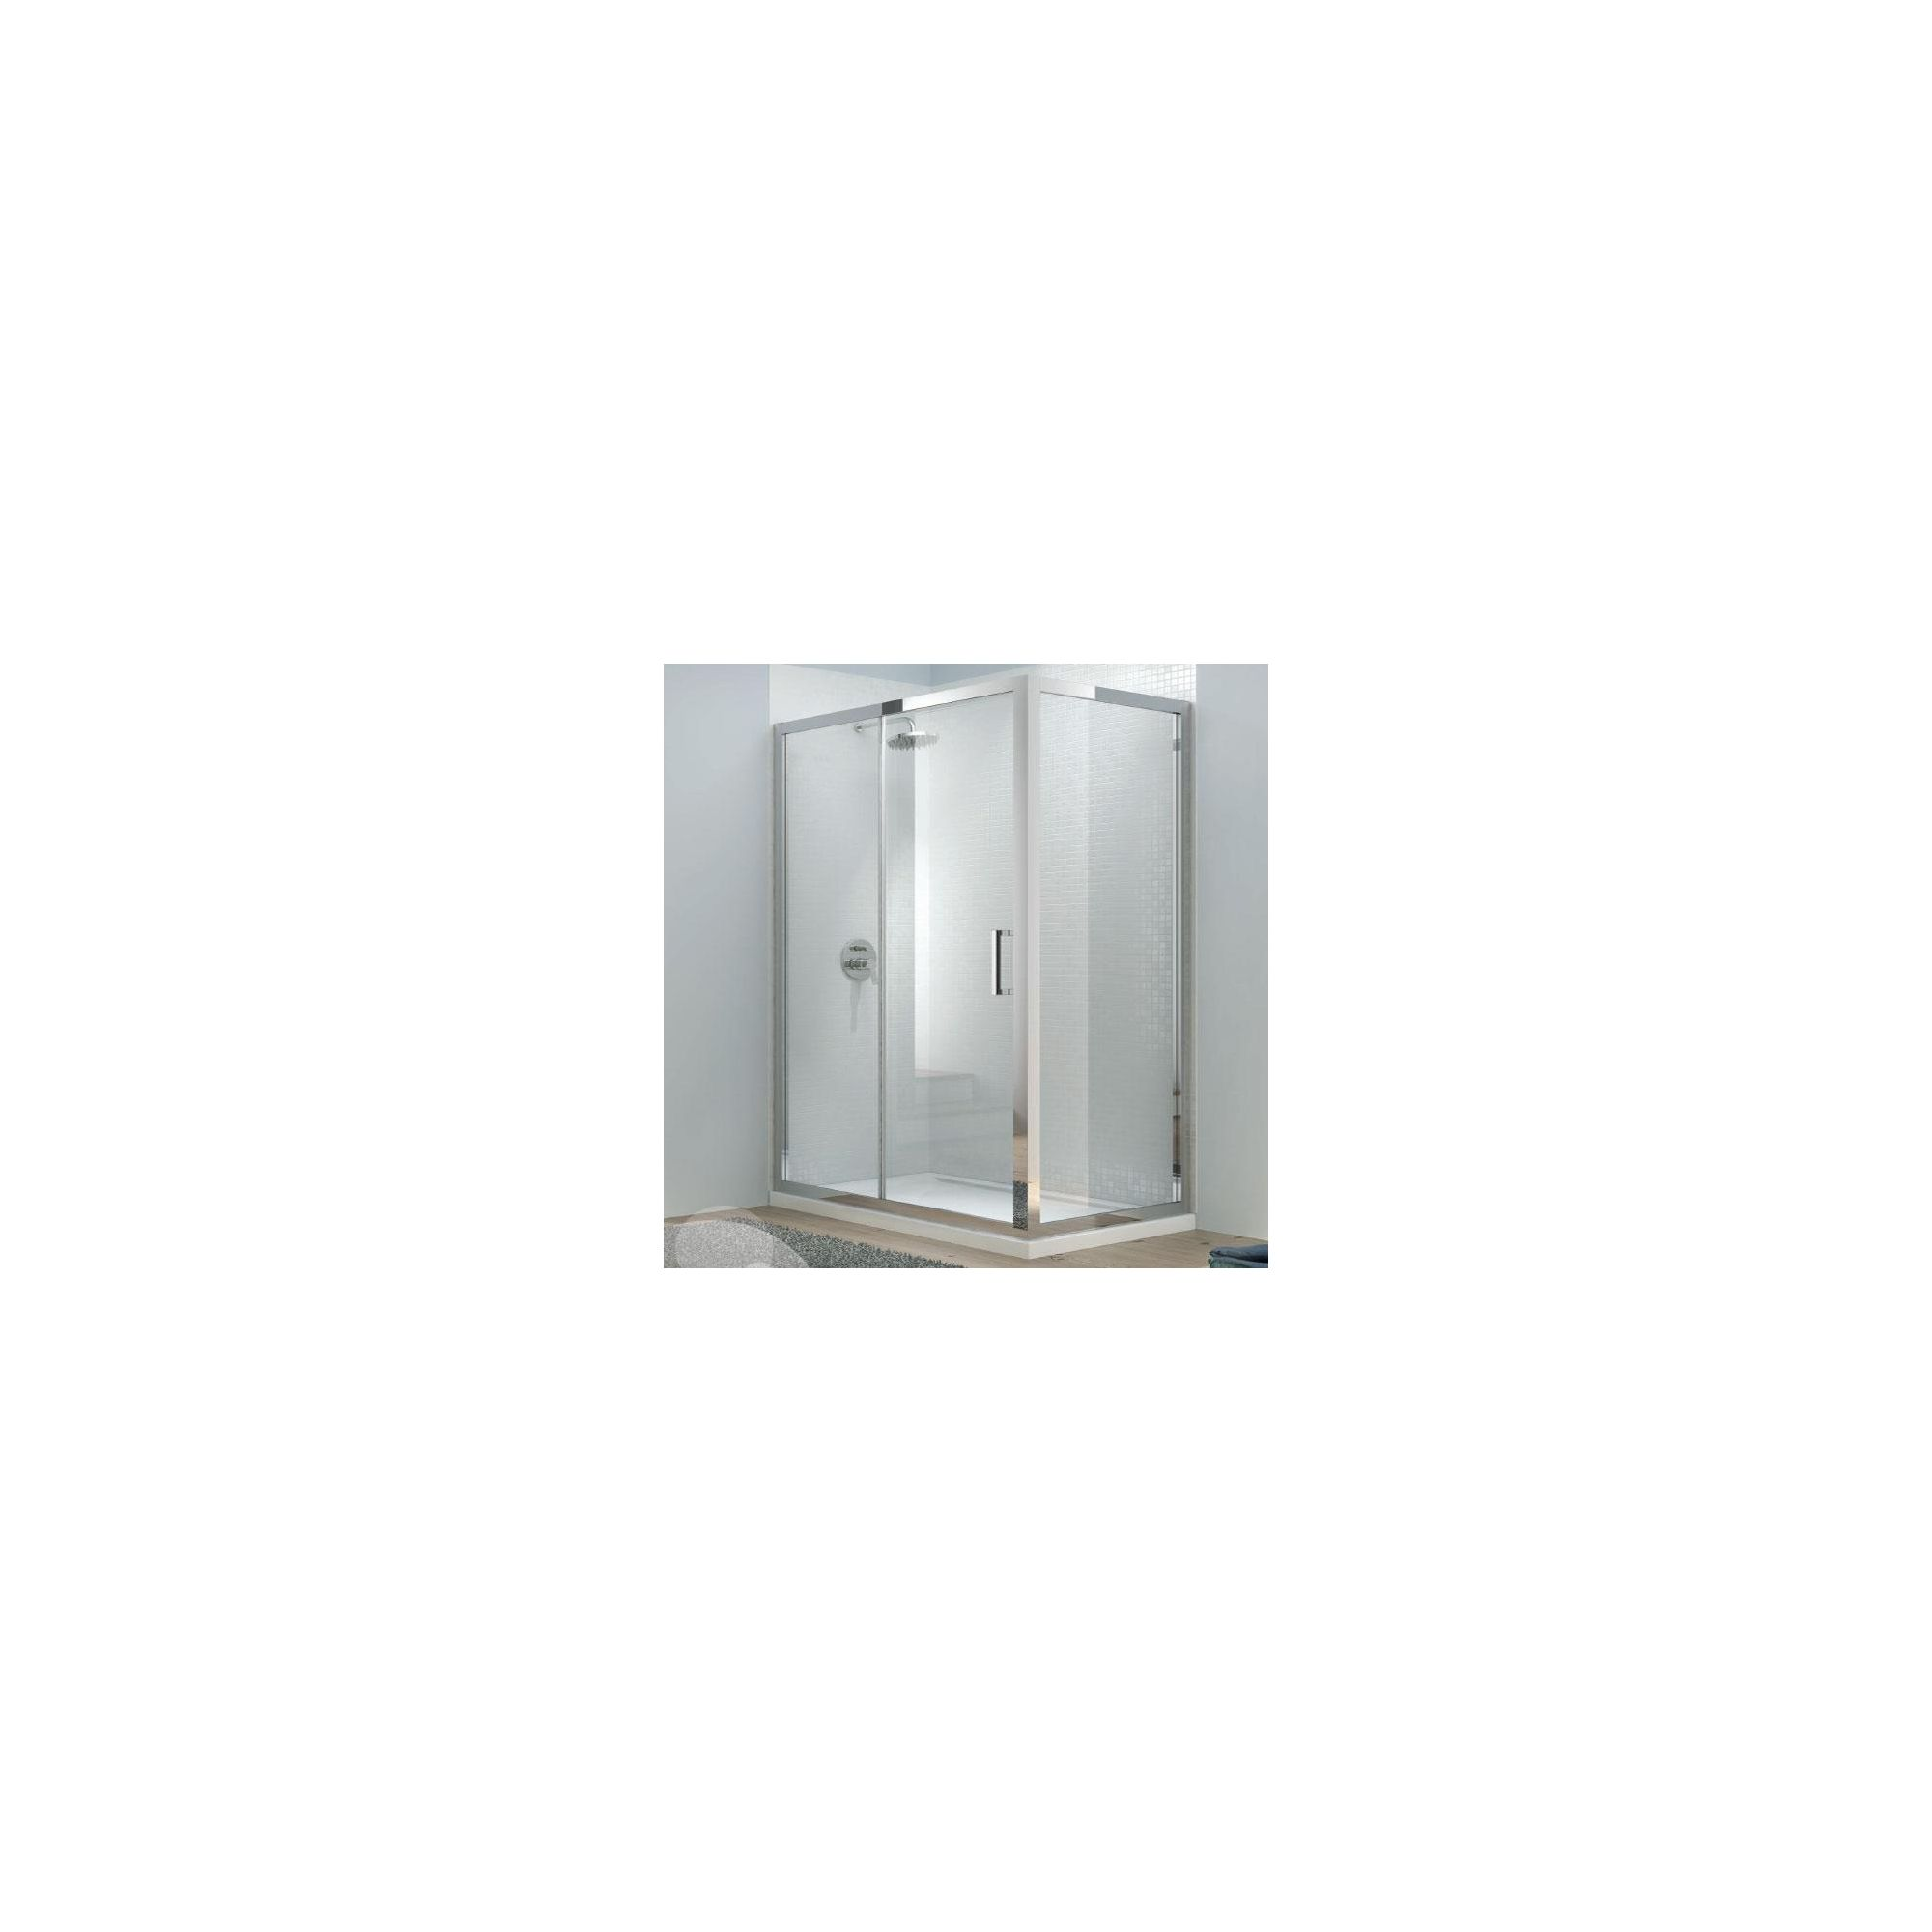 Merlyn Vivid Eight Sliding Door Shower Enclosure, 1200mm x 800mm, Low Profile Tray, 8mm Glass at Tesco Direct